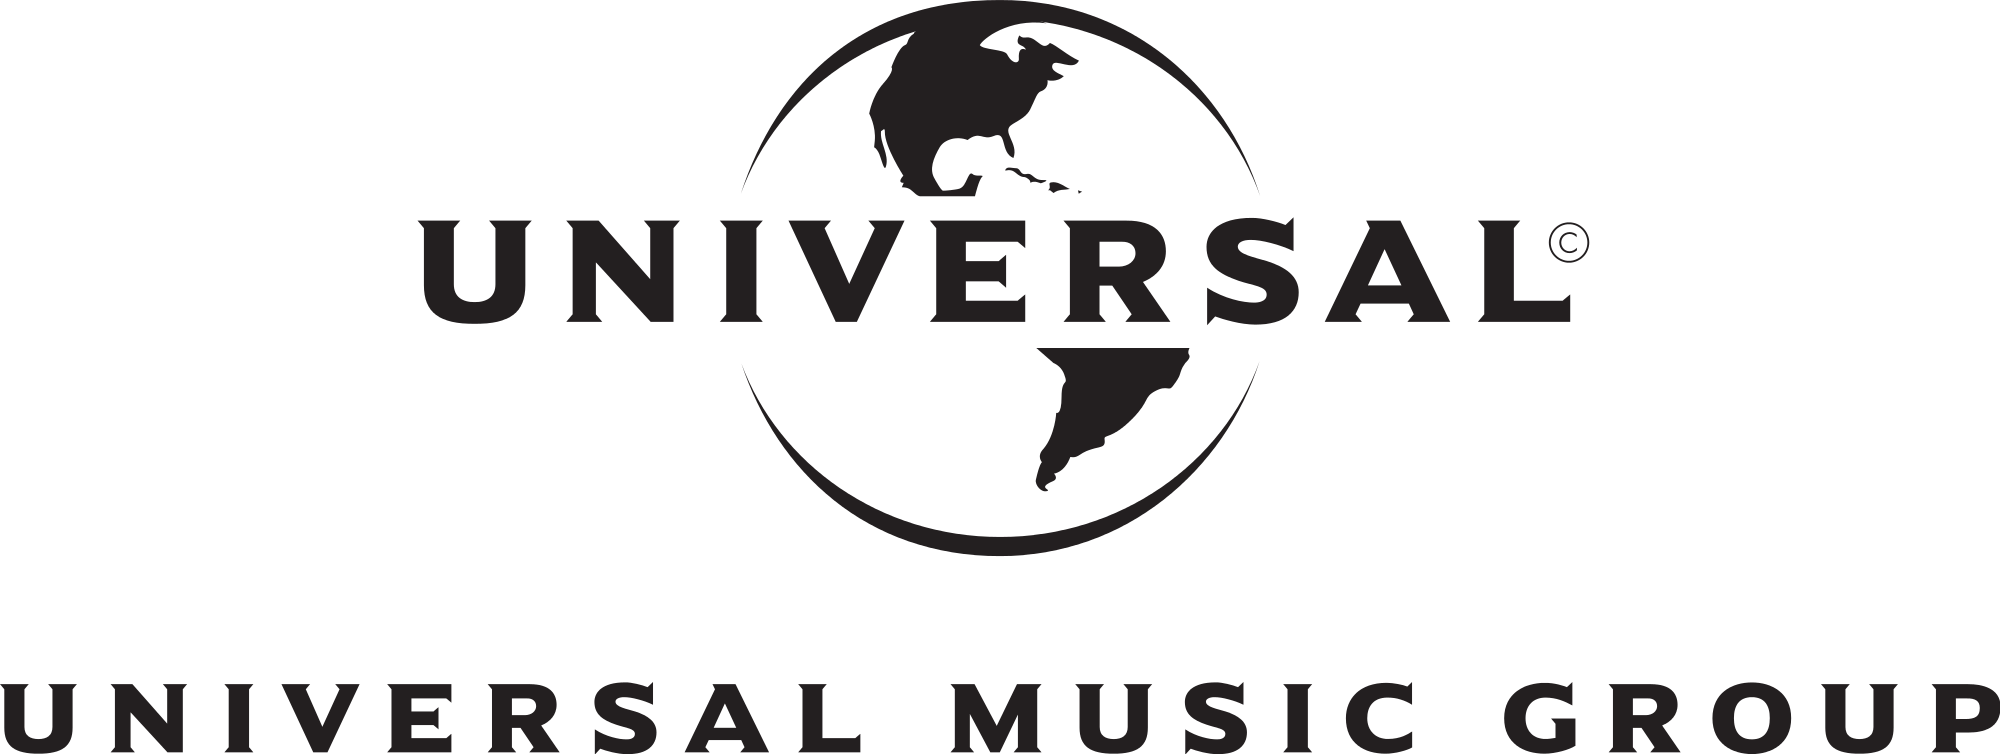 Universal Music Group.png